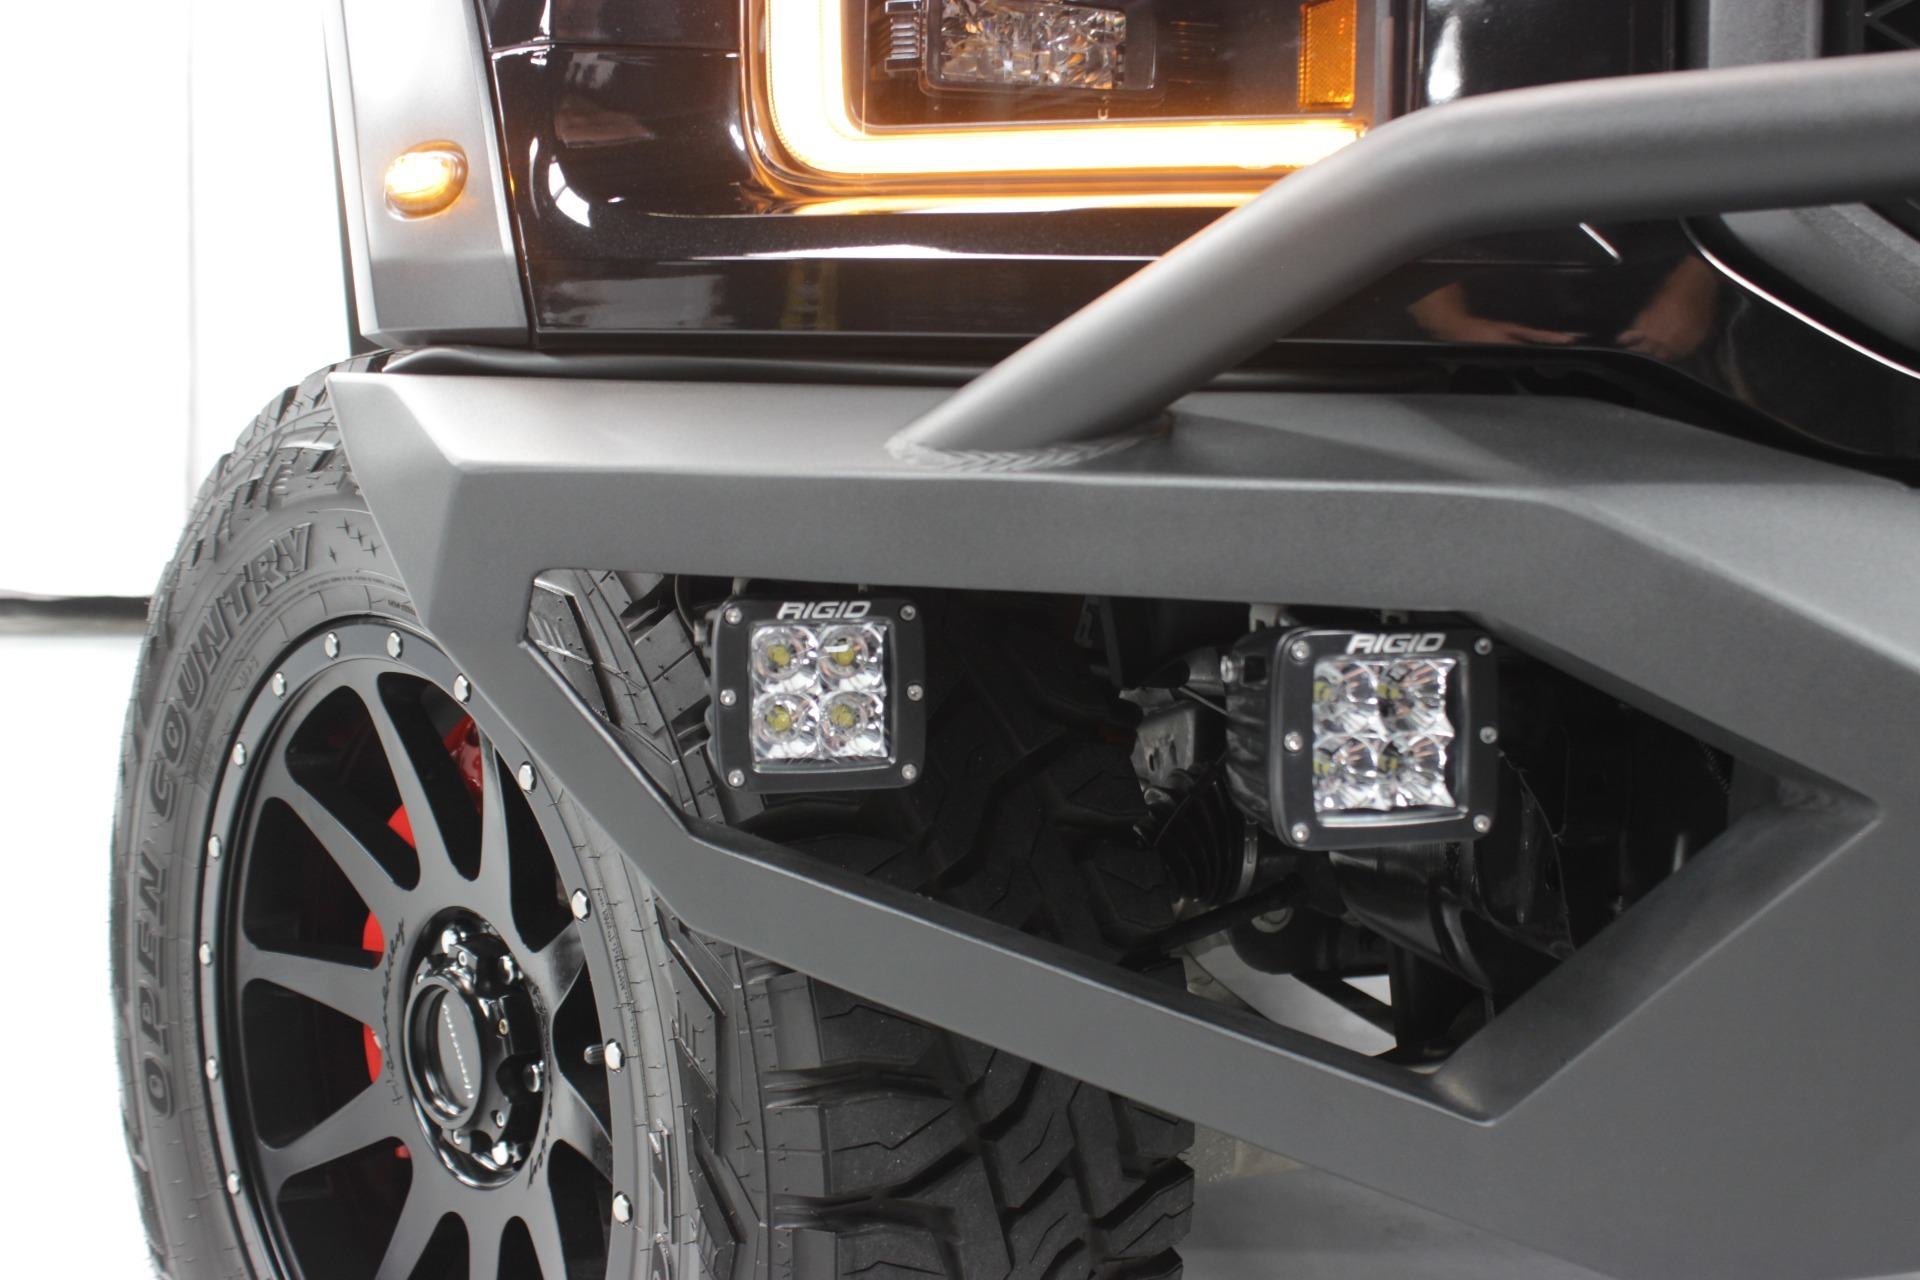 Used 2019 Ford F-150 RAPTOR 4x4 HENNESSY VELOCIRAPTOR VR600 UPGRADE (600HP) for sale $99,995 at Formula Imports in Charlotte NC 28227 43